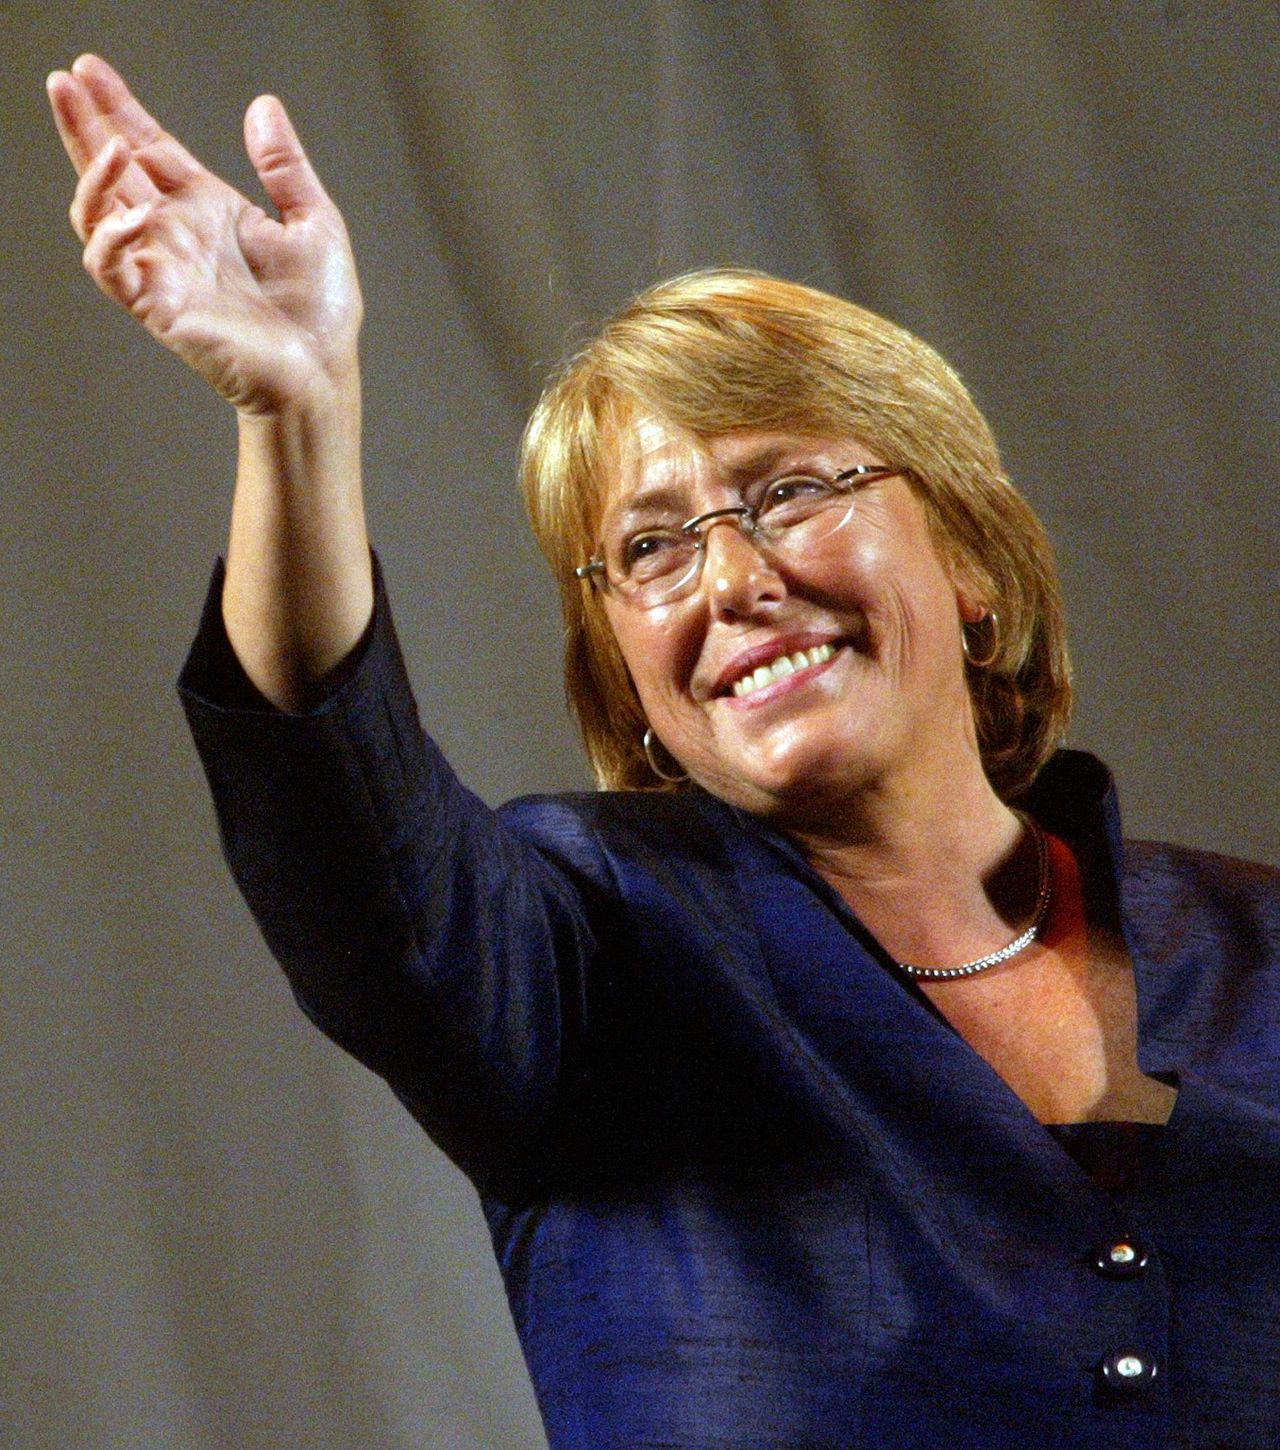 Newly elected Chilean President Michelle Bachelet waves to supporters during a celebration in Santiago January 15, 2006. Bachelet was elected Chile's first woman president on Sunday, consolidating the growing strength of the left in Latin America. REUTERS/Maglio Perez Michelle Bachelet. Foto Reuters